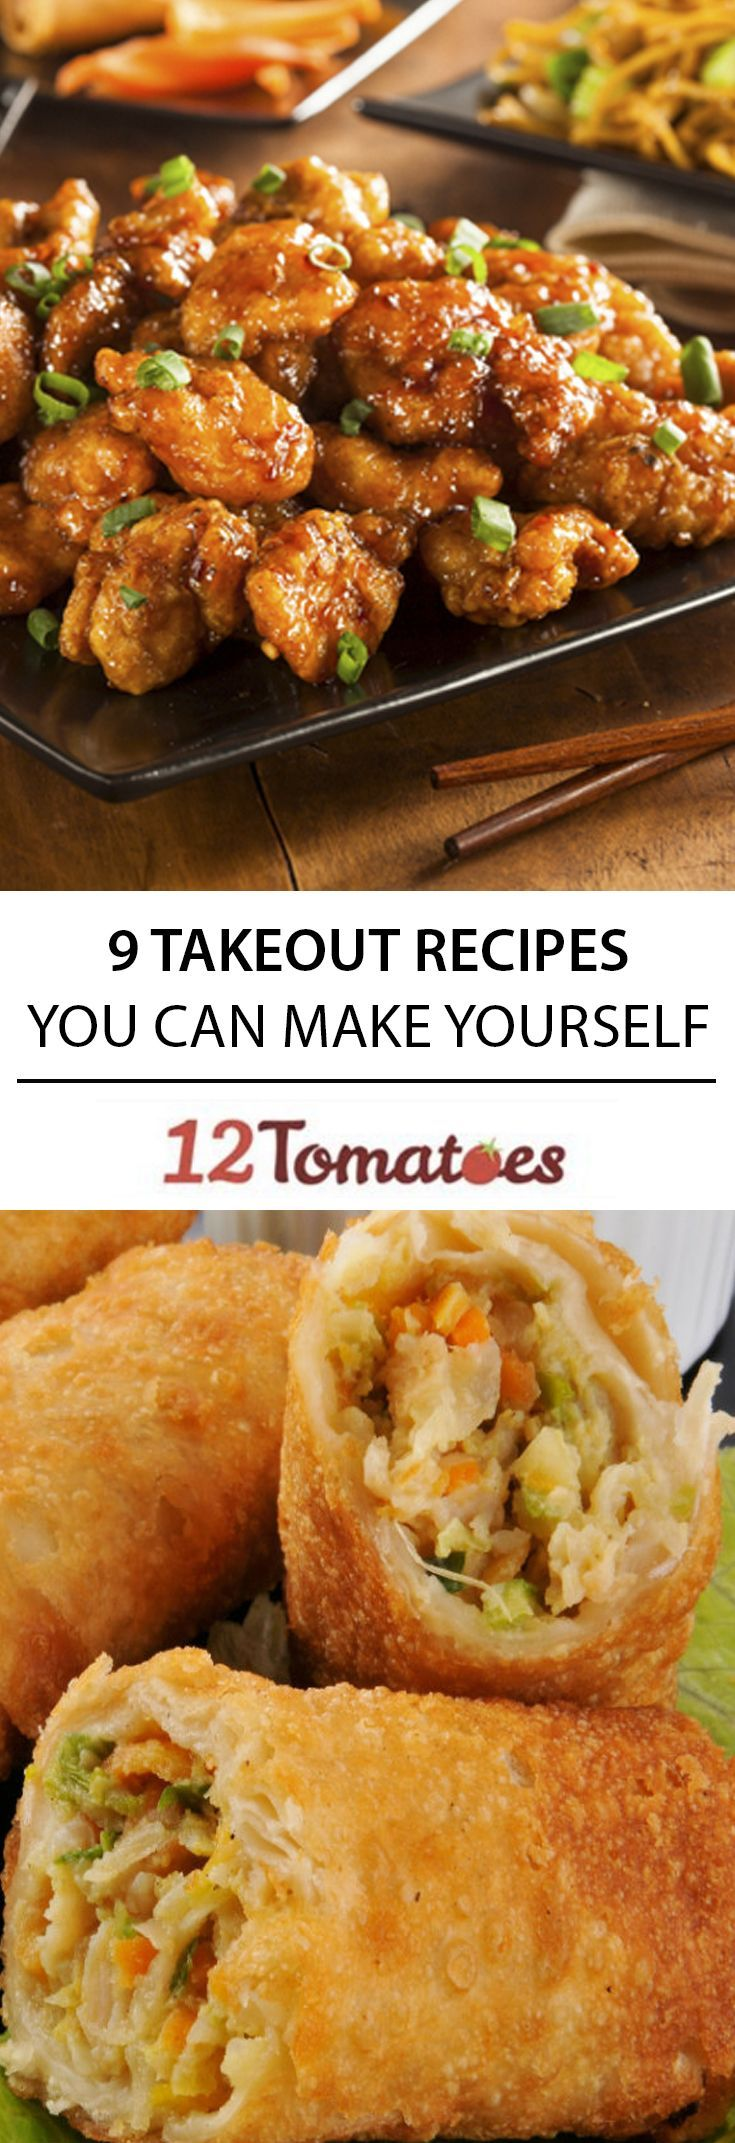 9 recipes better than takeout chinese food recipes pinterest 9 recipes better than takeout chinese food recipes pinterest chinese food recipes recipes and food forumfinder Choice Image